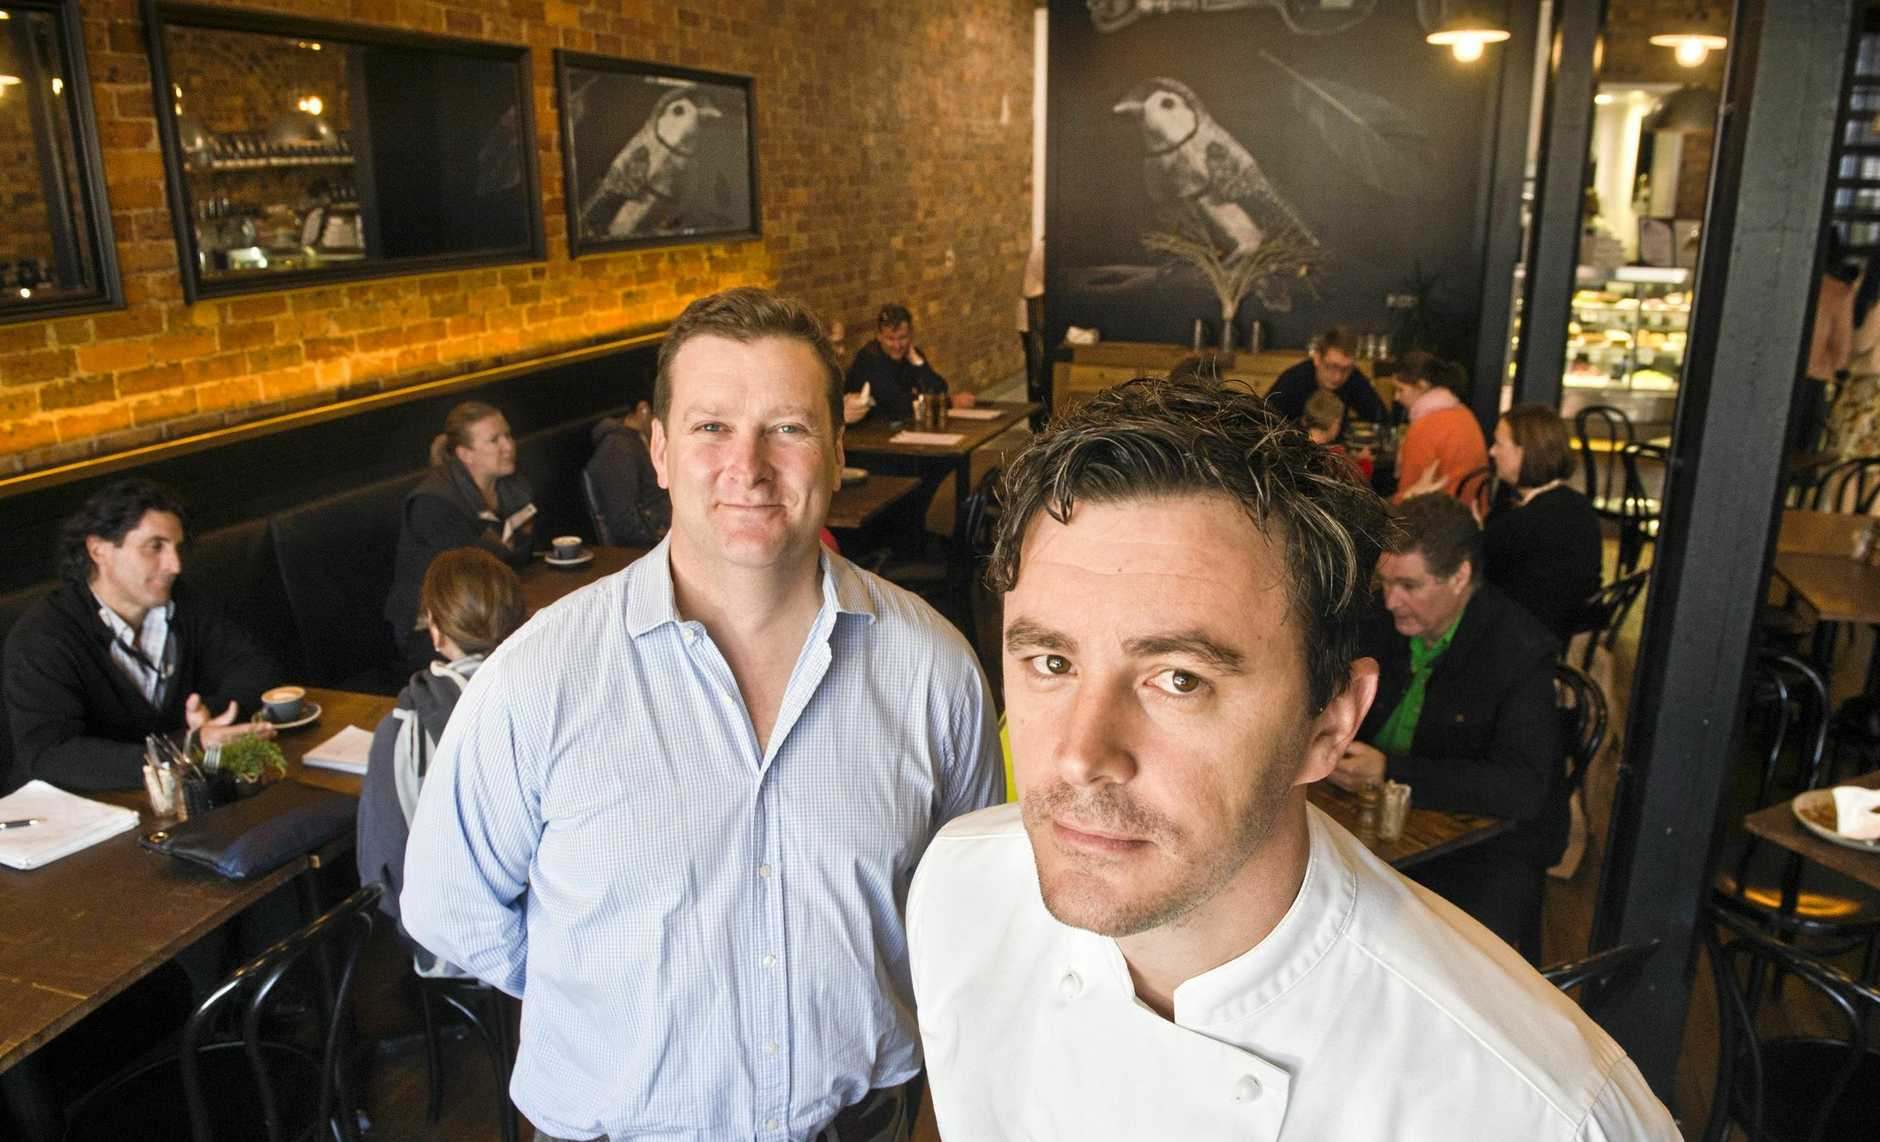 OPEN FOR DINNER: The Finch owner Dan Farquhar (left) with new chef Bryan Nielsen ready for night dining.